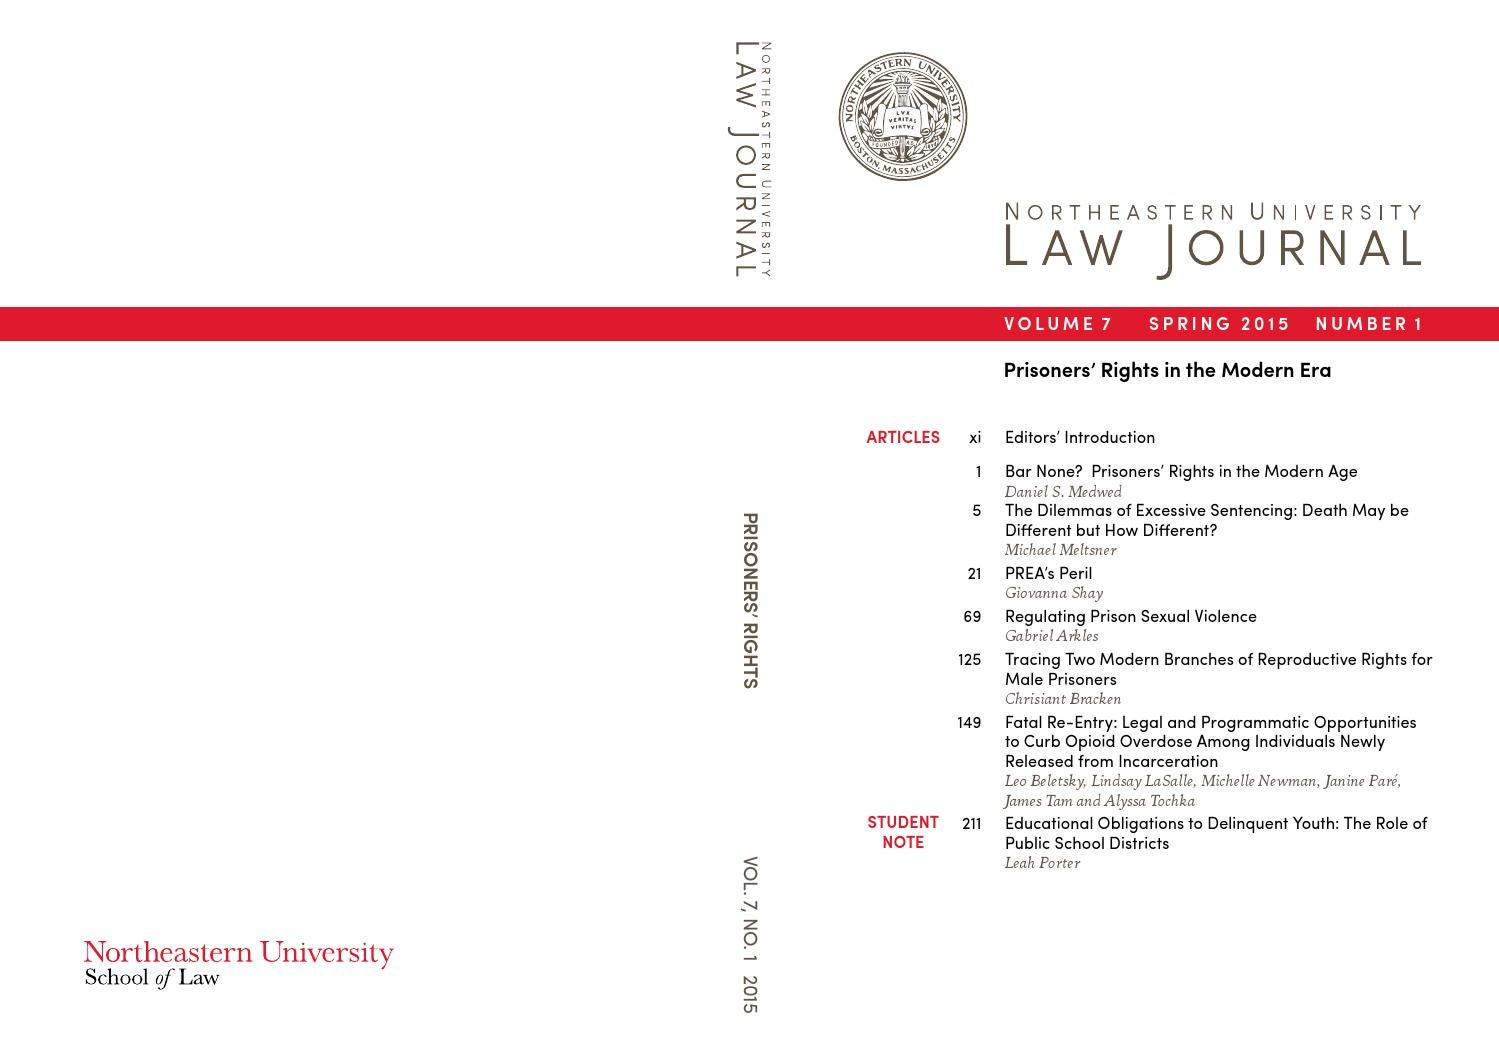 Northeastern University Law Journal Vol. 7.1 by Paola Moll - issuu on craftsman table saw cover, grizzly table saw wiring diagram, craftsman table saw wheels, craftsman table saw riving knife, craftsman table saw relay, craftsman table saw troubleshooting, delta table saw wiring diagram, ridgid table saw wiring diagram, hitachi table saw wiring diagram, delta jointer wiring diagram, delta unisaw wiring diagram, rockwell table saw wiring diagram, craftsman table saw tools, john deere 670 wiring diagram, makita table saw wiring diagram, cordless drill wiring diagram, craftsman table saw manual, table saw motor wiring diagram, craftsman table saw cabinet, craftsman table saw motor,